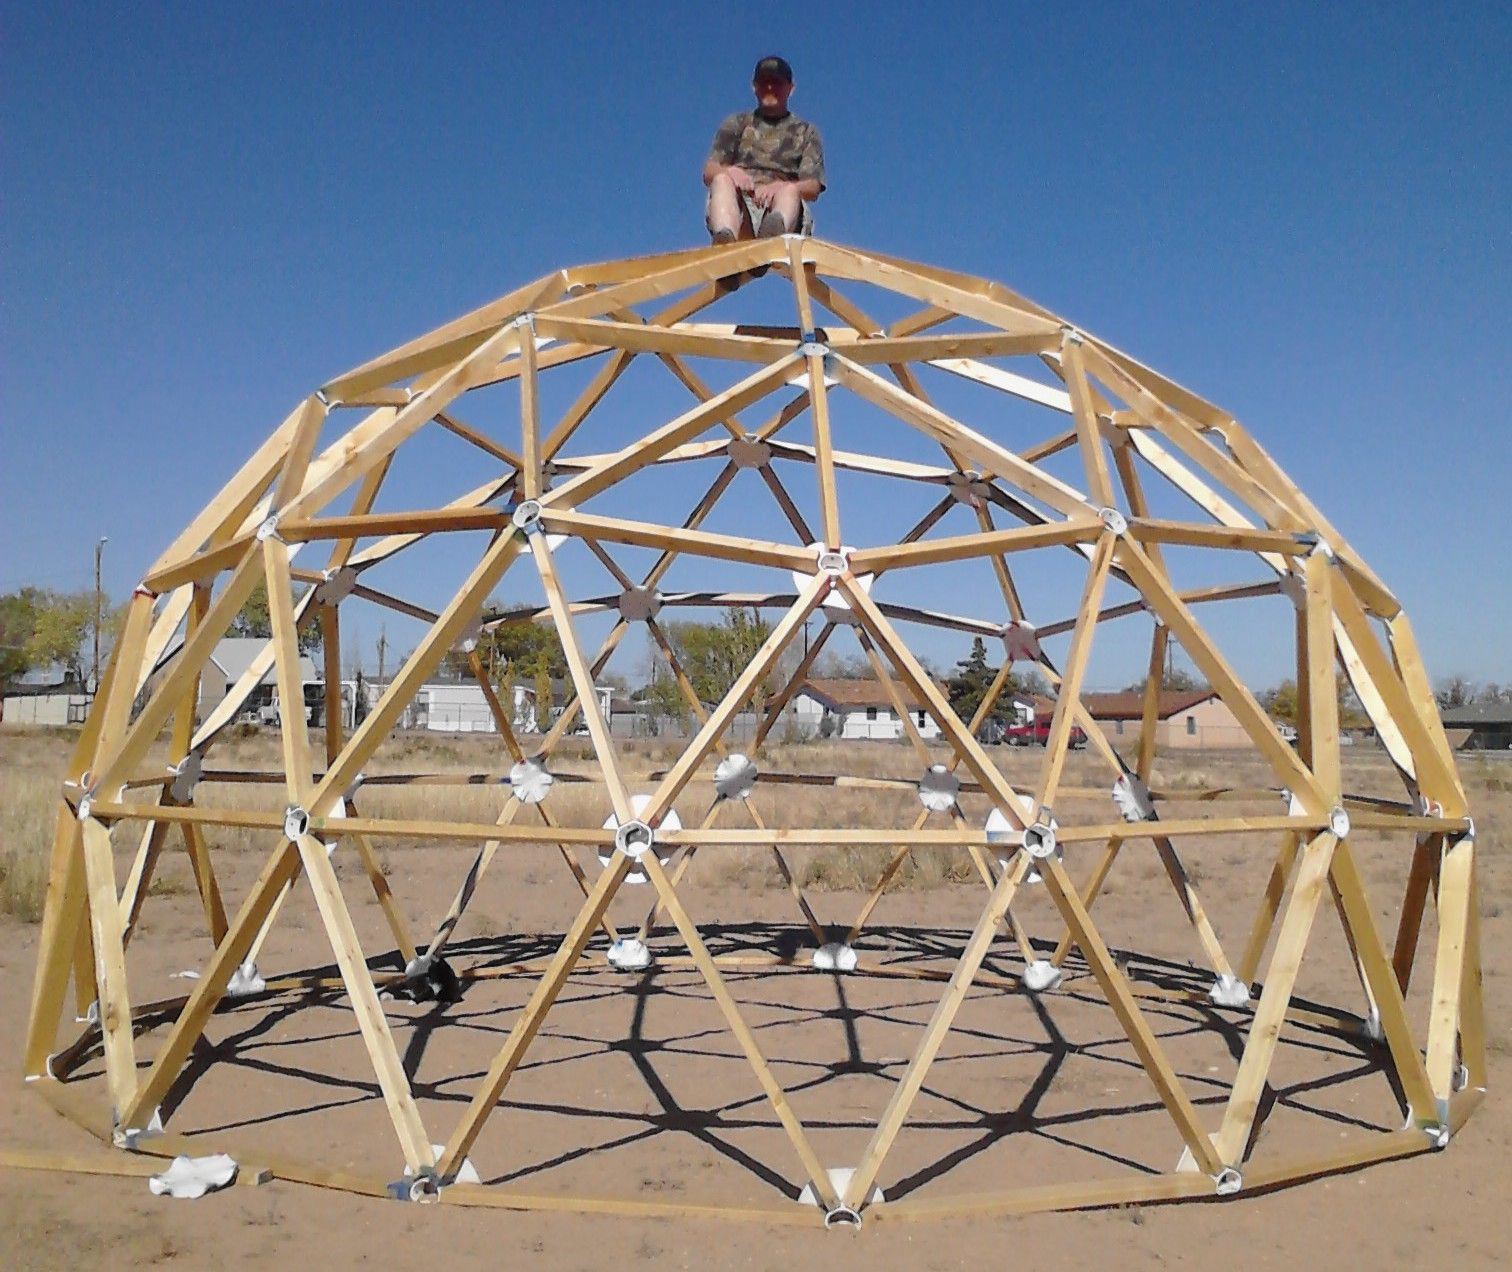 2x6 Heavy Duty Wood Geodesic Hub Kit: XLG Geodesic Dome Connector Kits Using 2x4's (not Included